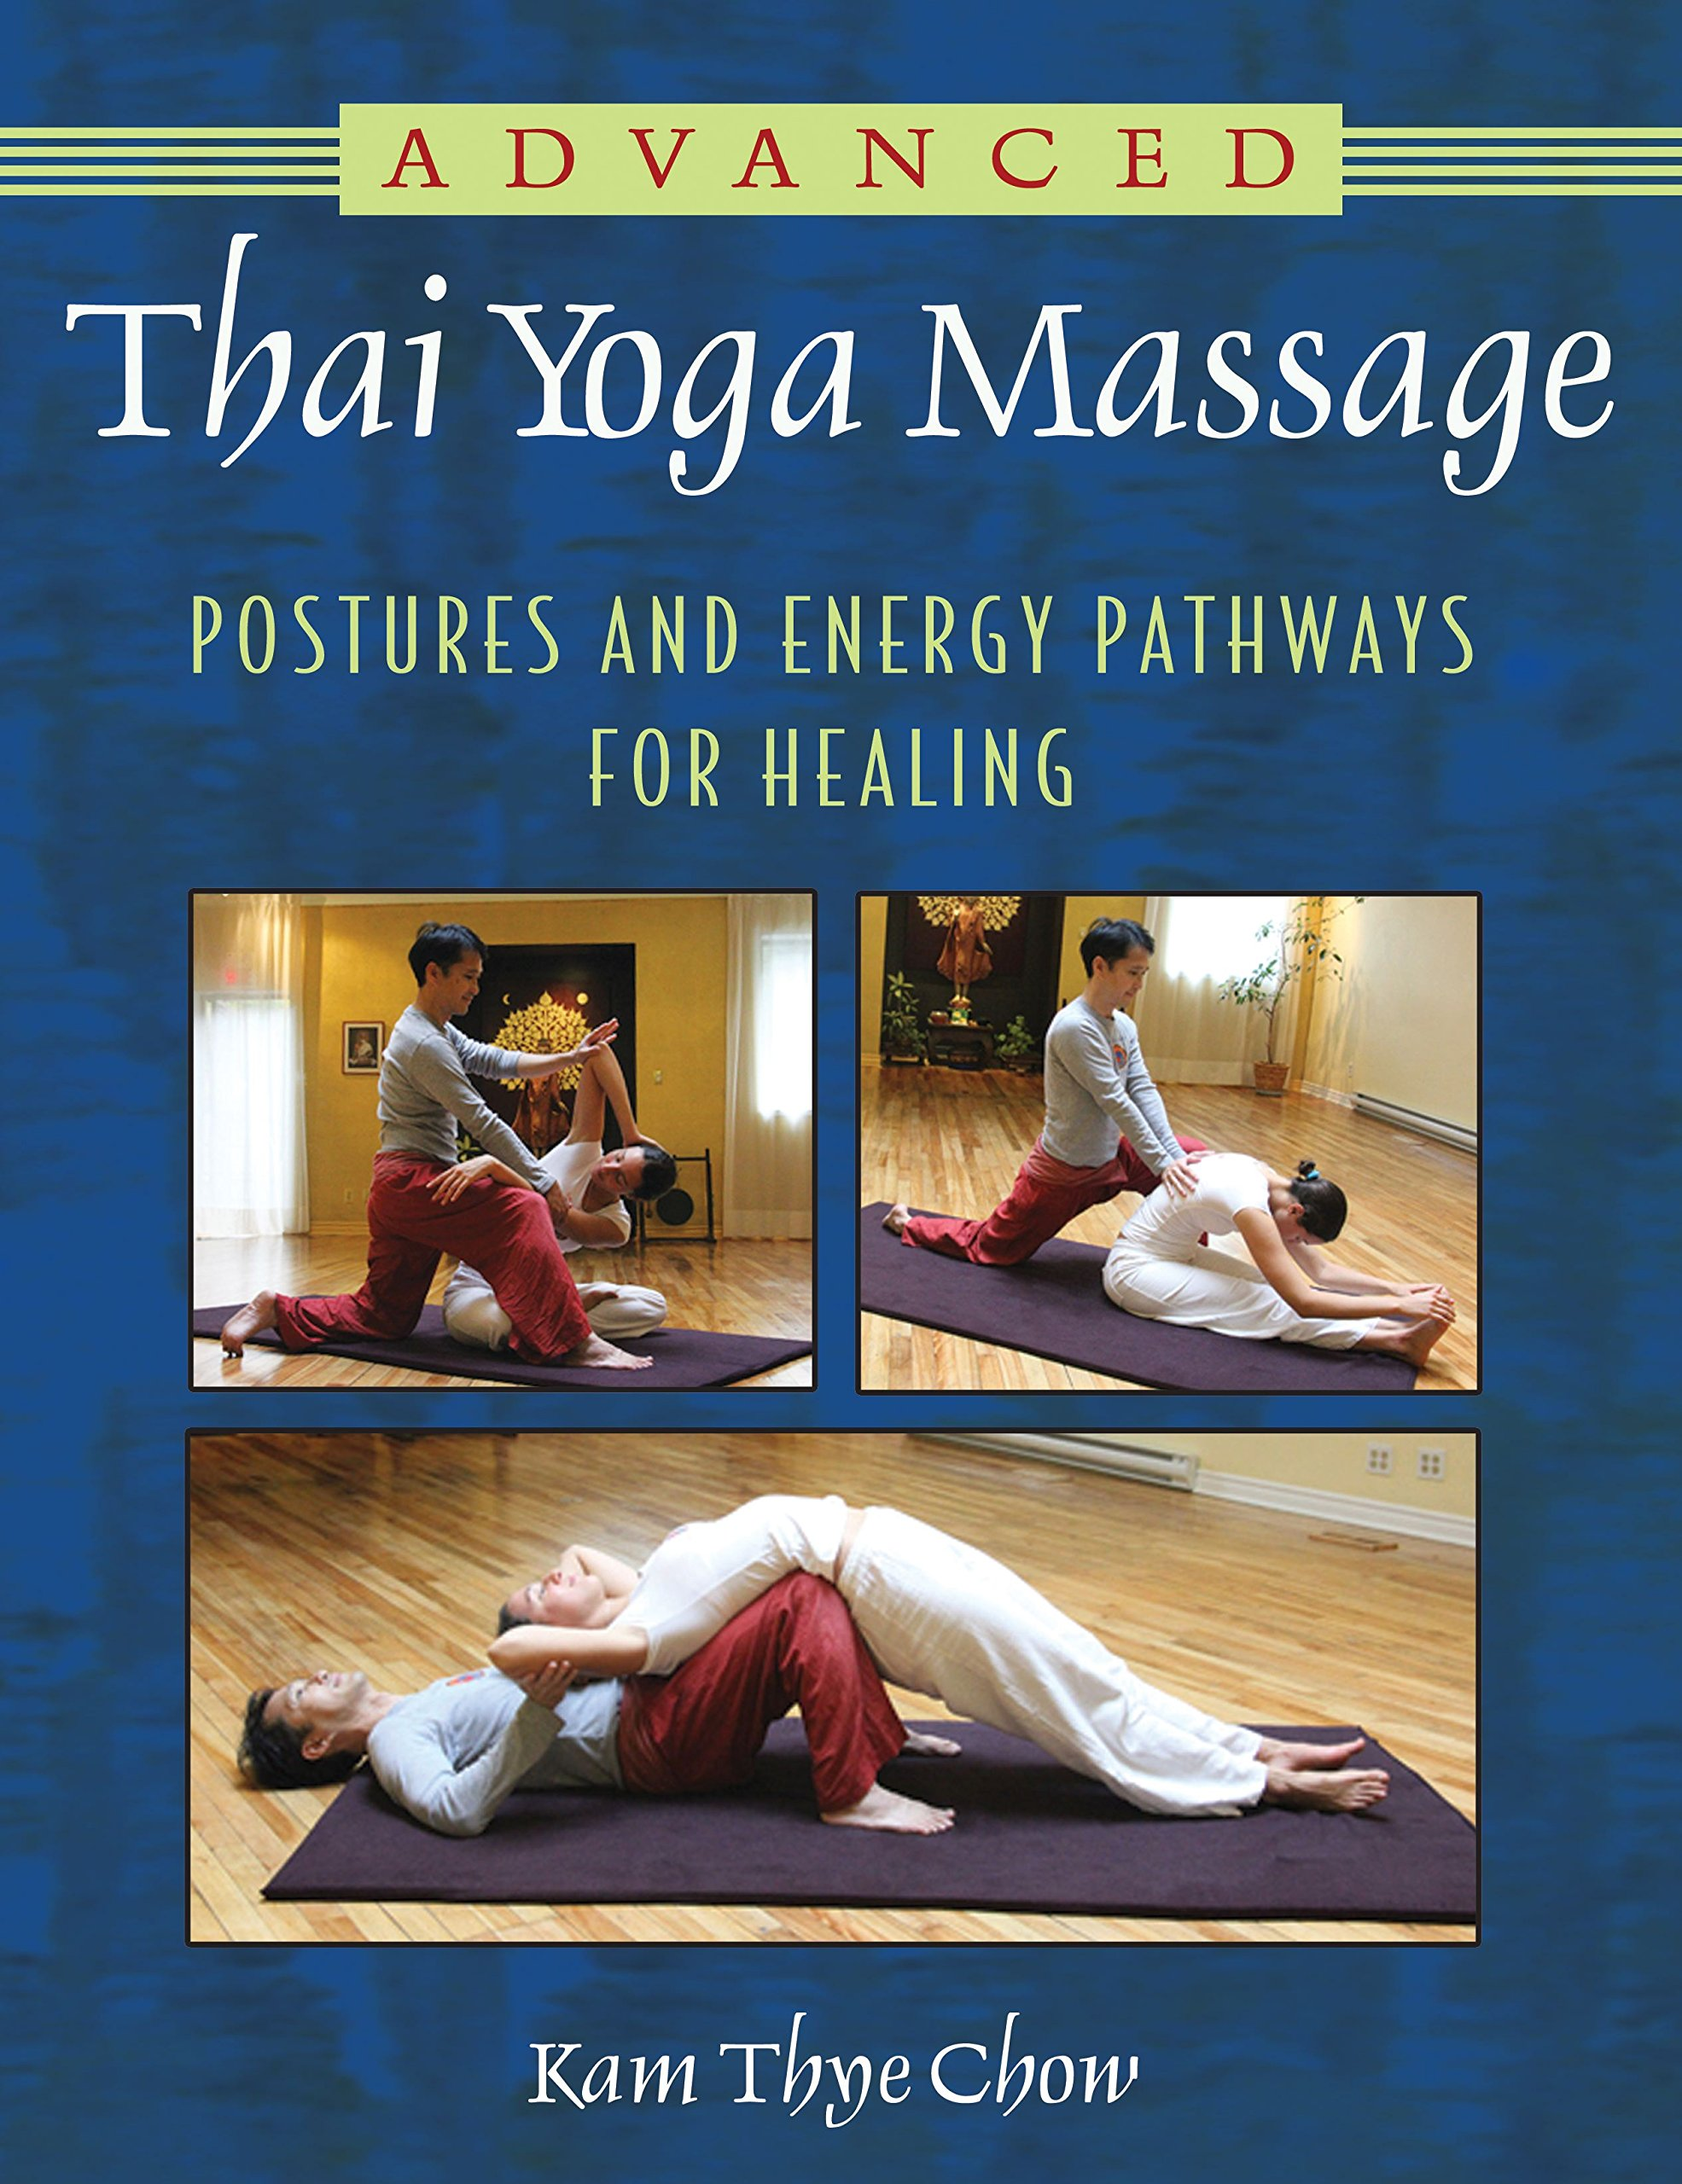 Advanced Thai Yoga Massage Postures product image